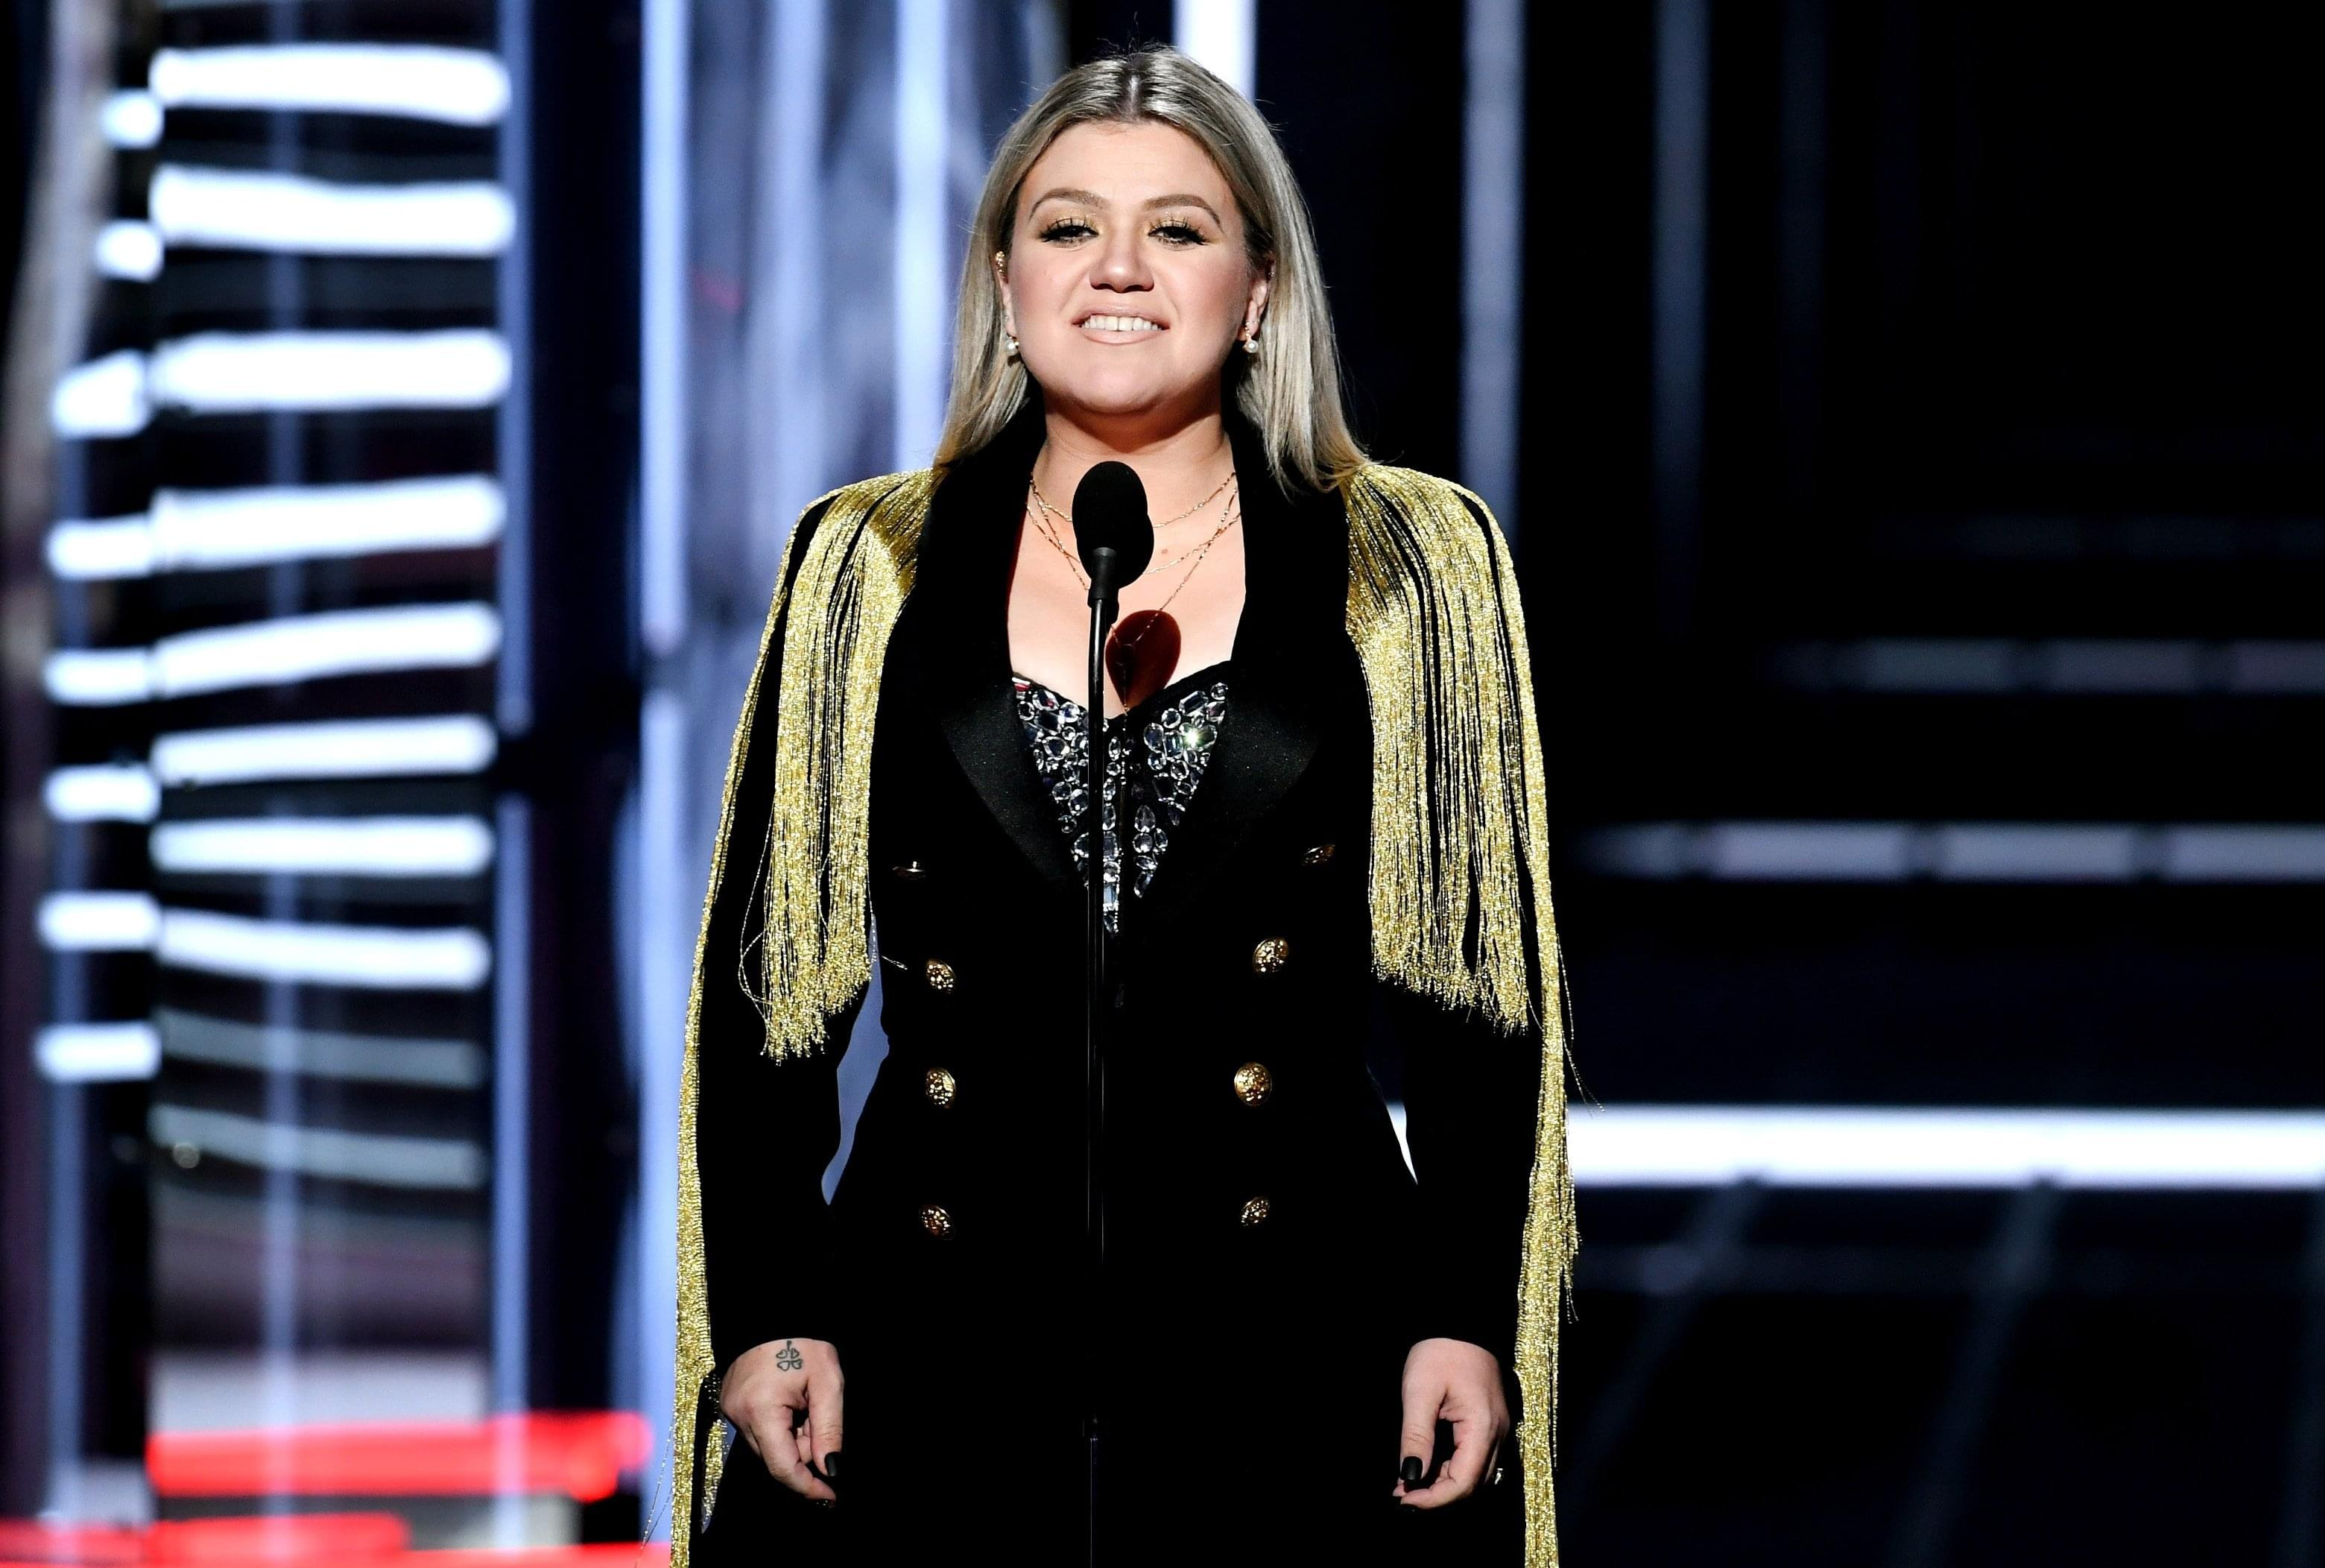 The reason Kelly Clarkson didn't do a moment of silence for Texas at the Billboard Awards